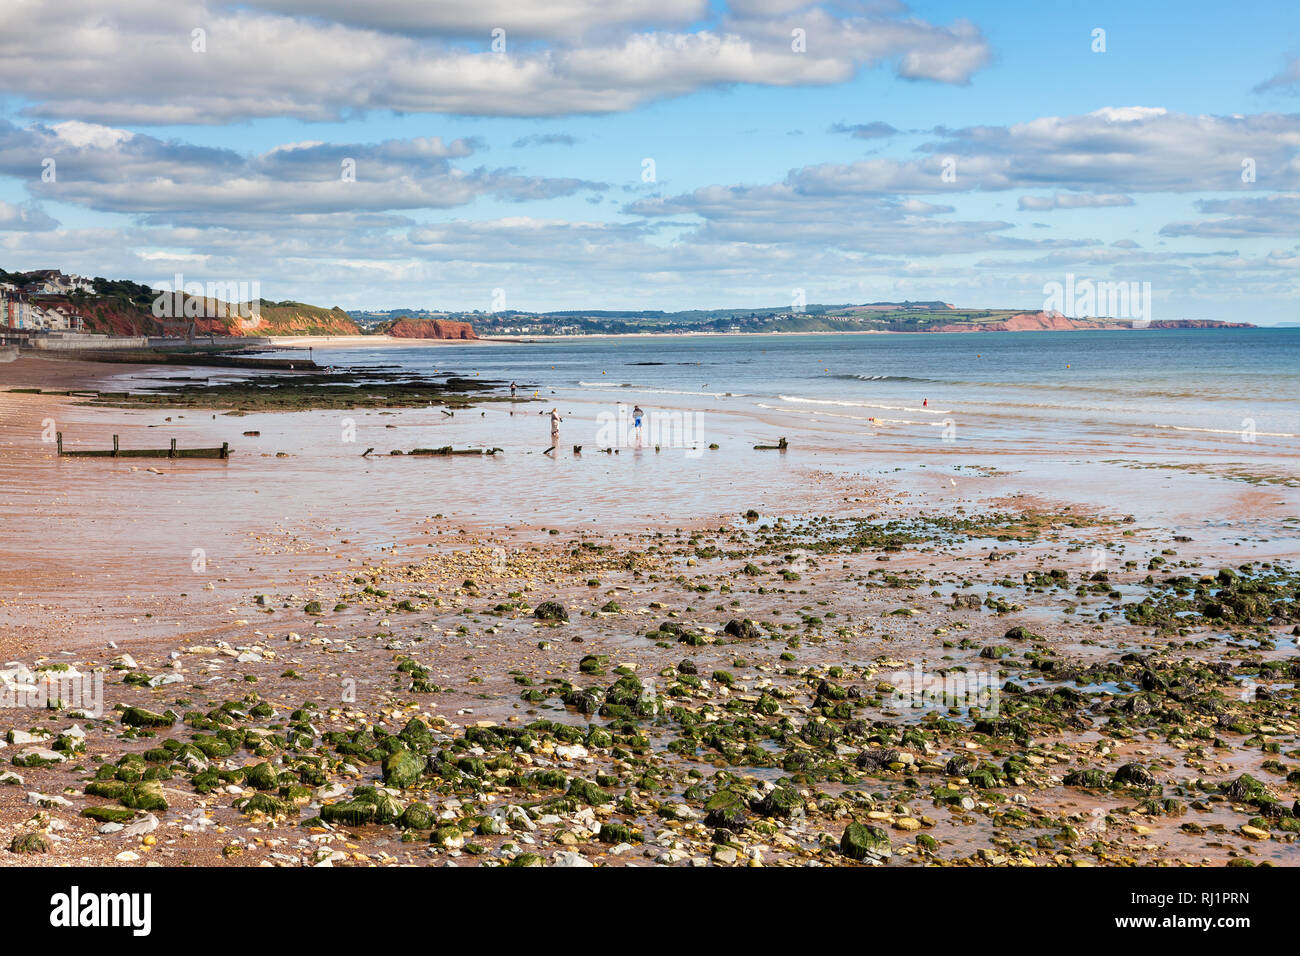 Summer overlooking the beach at Dawlish Devon England UK Europe Stock Photo